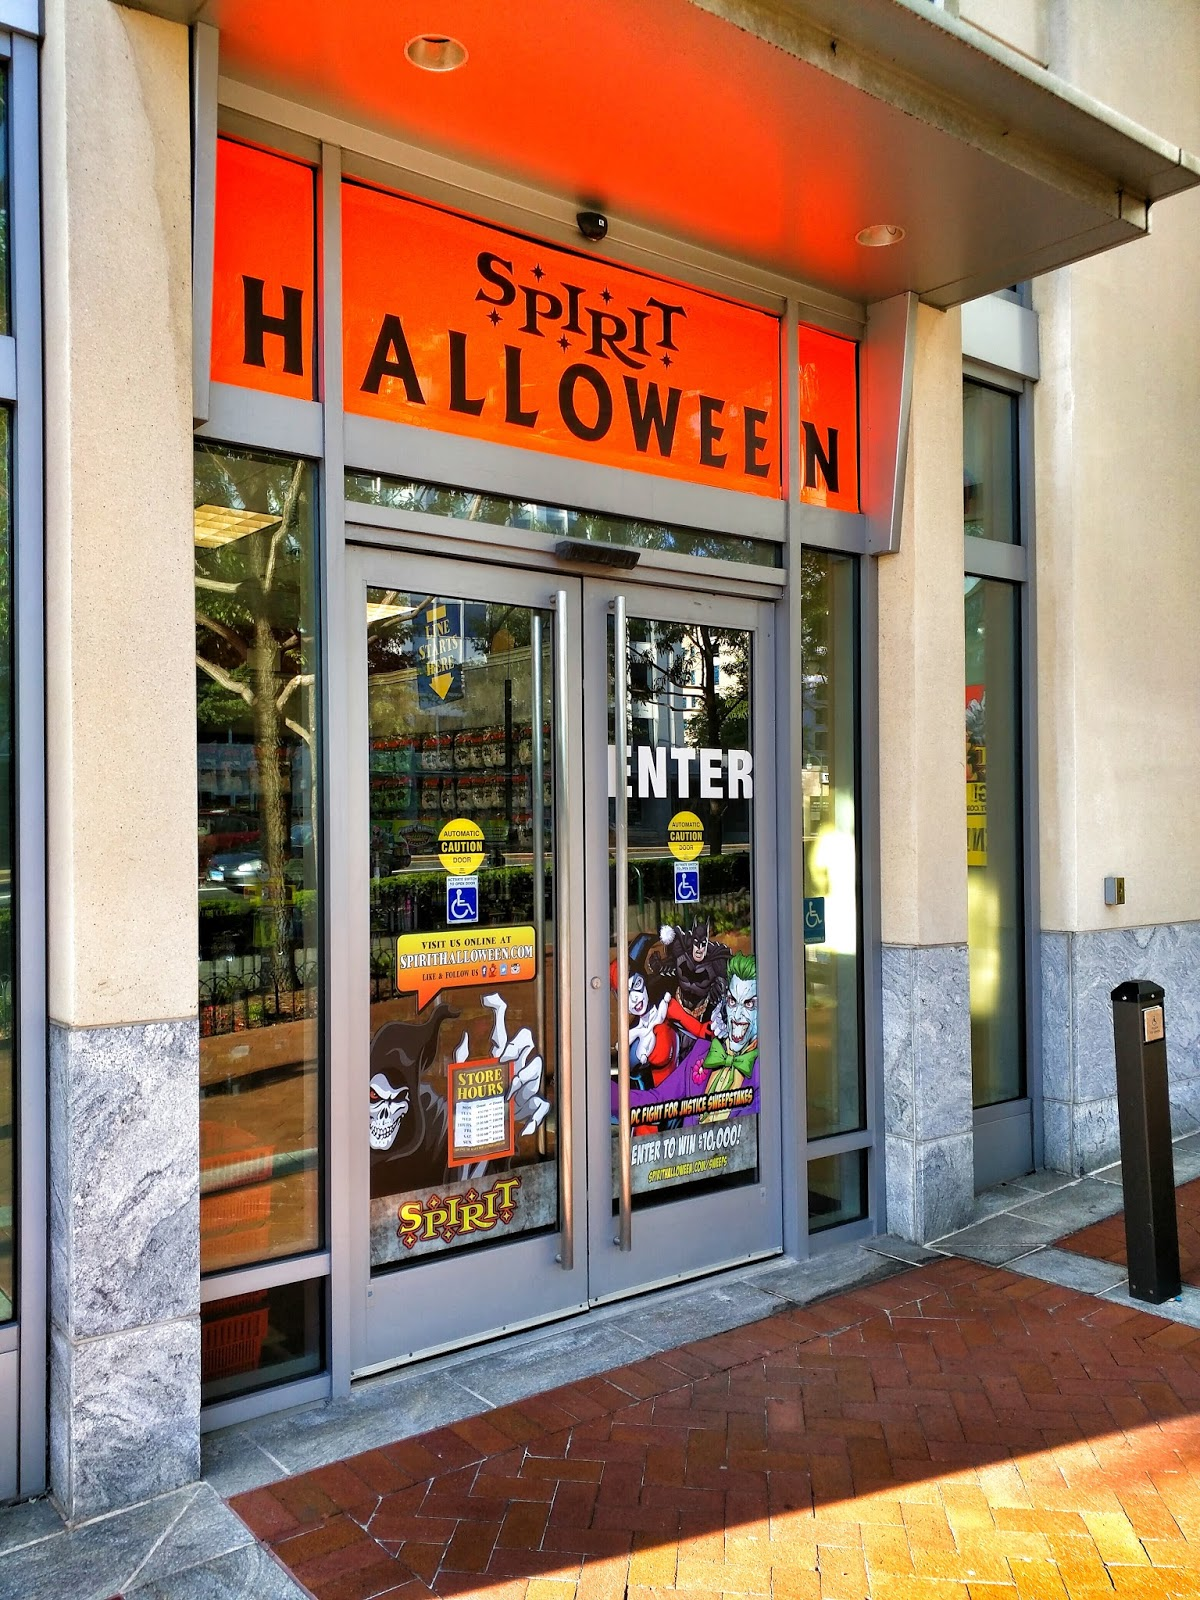 spirit halloween is now open at the corner of georgia avenue and wayne avenue in downtown silver spring the worlds biggest halloween store chain offers